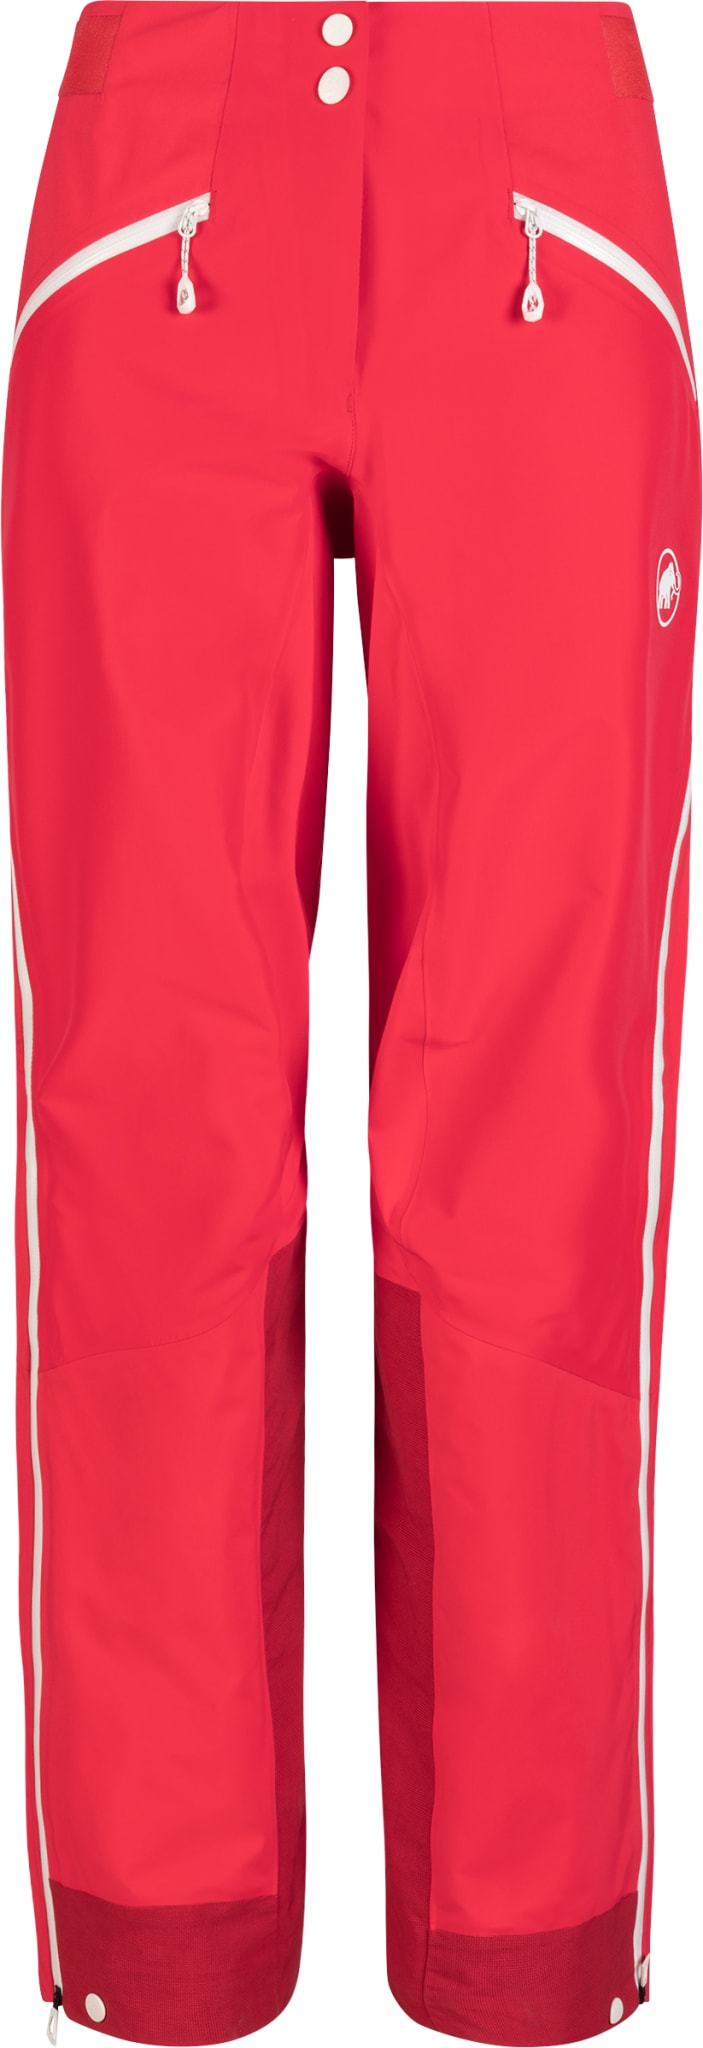 Nordwand Pro HS Pants Ws